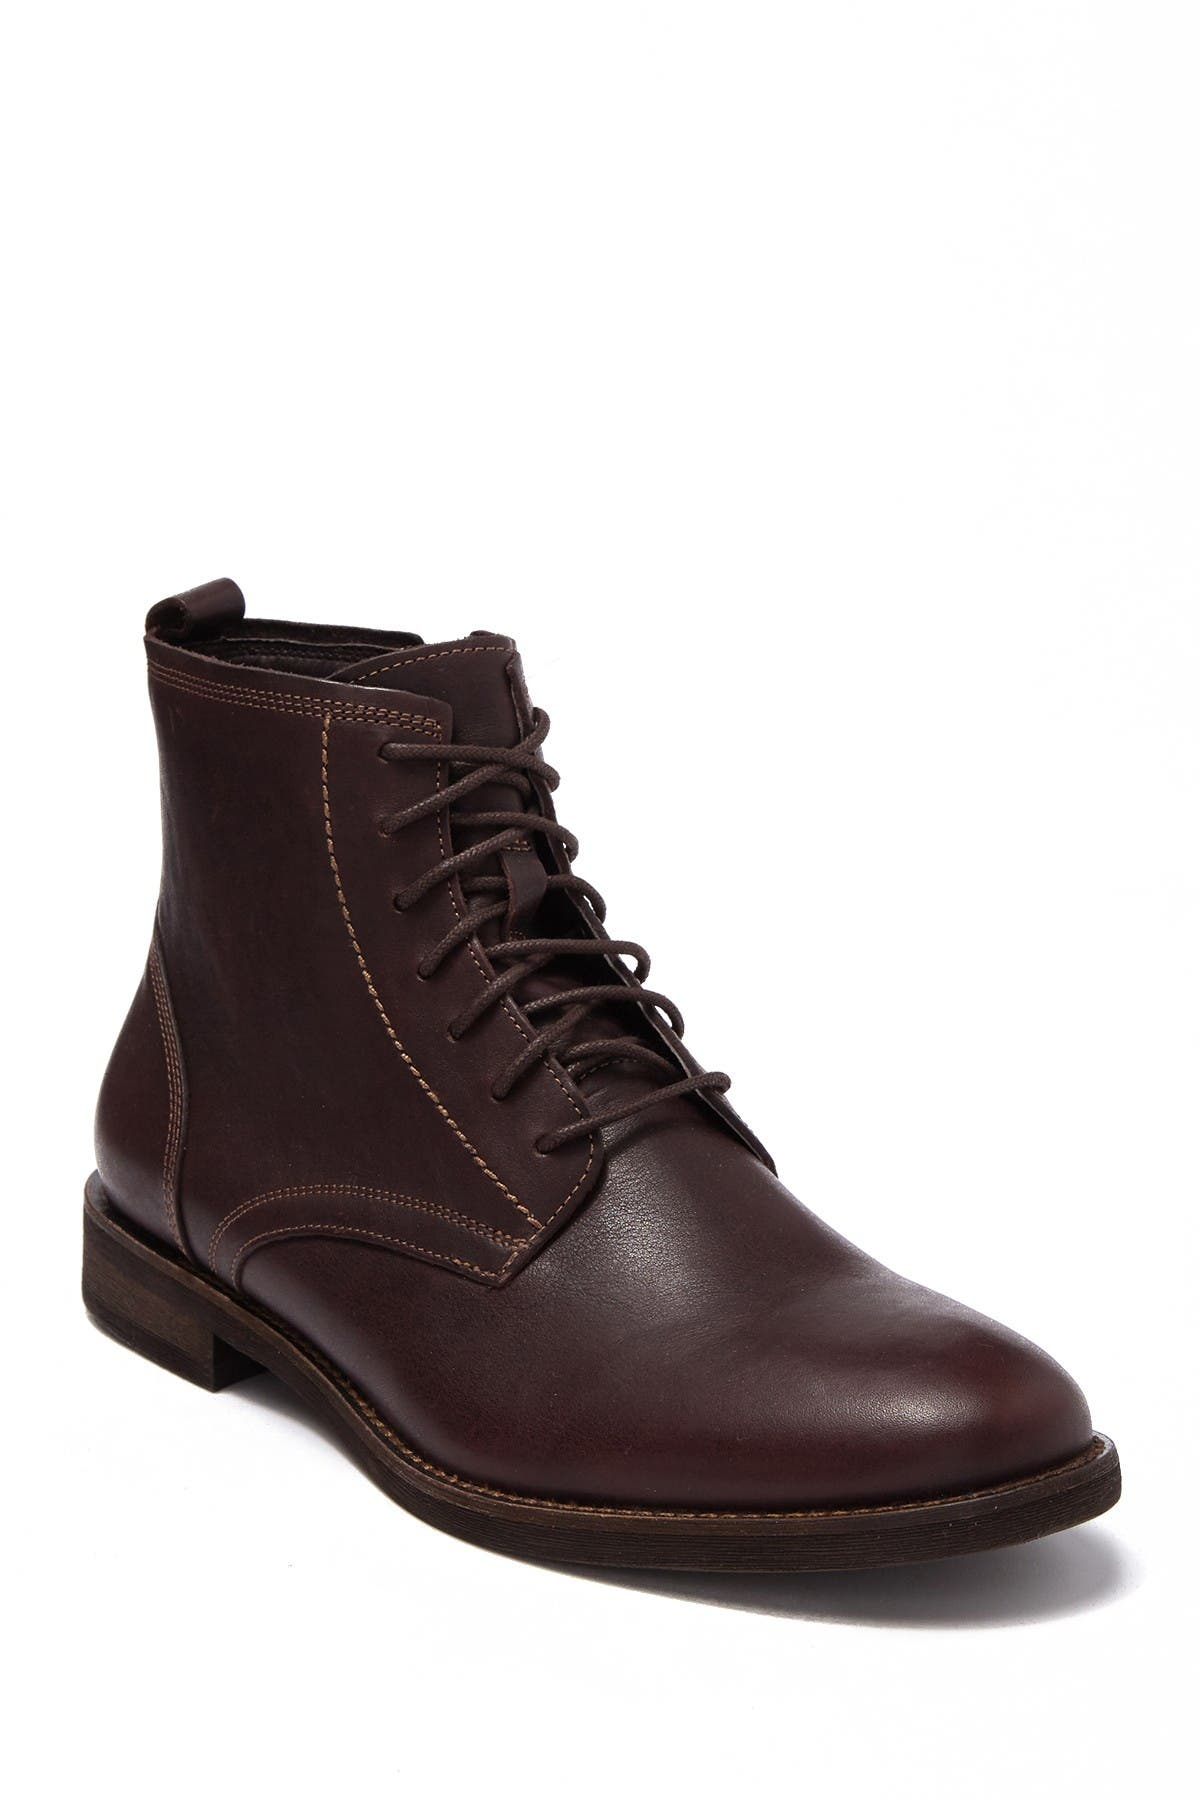 Image of Warfield & Grand Stilwell Boot